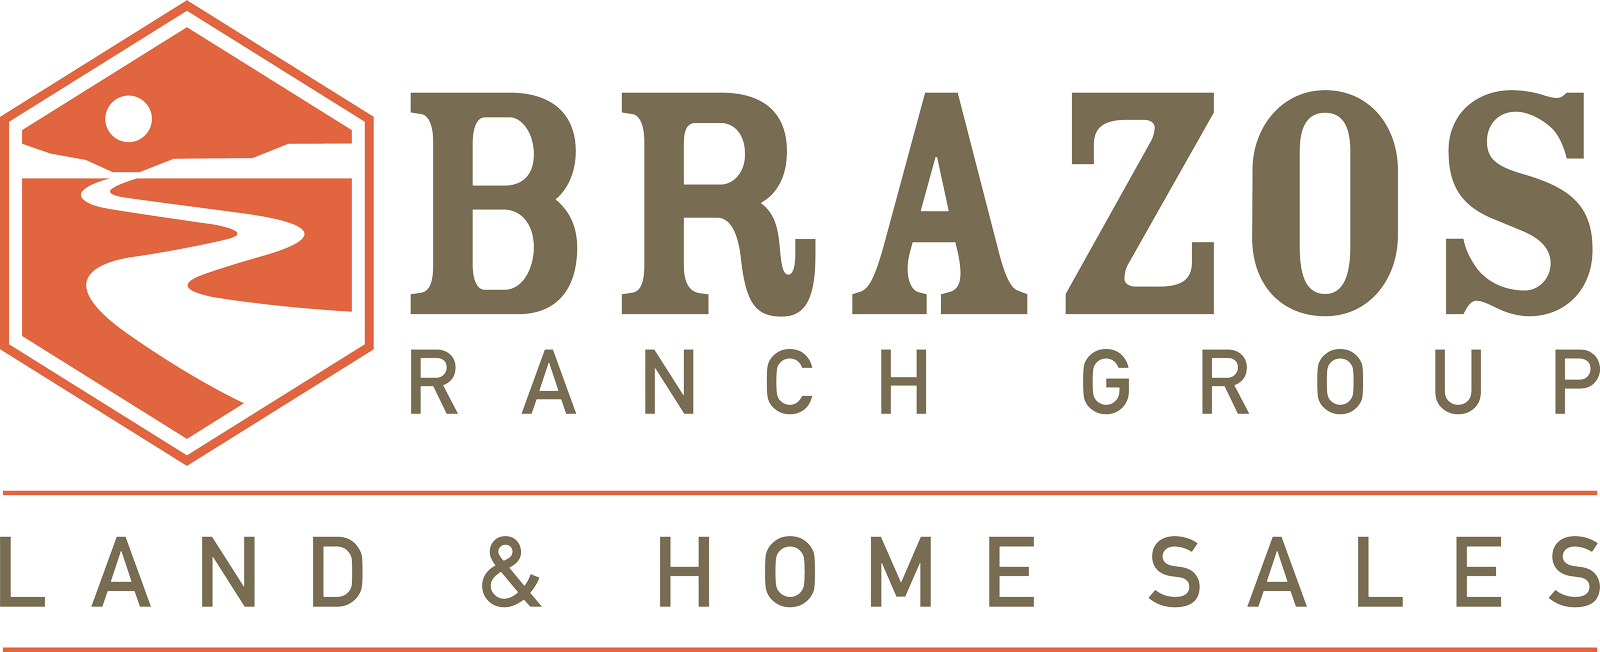 Brazos-Ranch-Group-Land-Homes-Sales-Logo-2019-2CLR.png